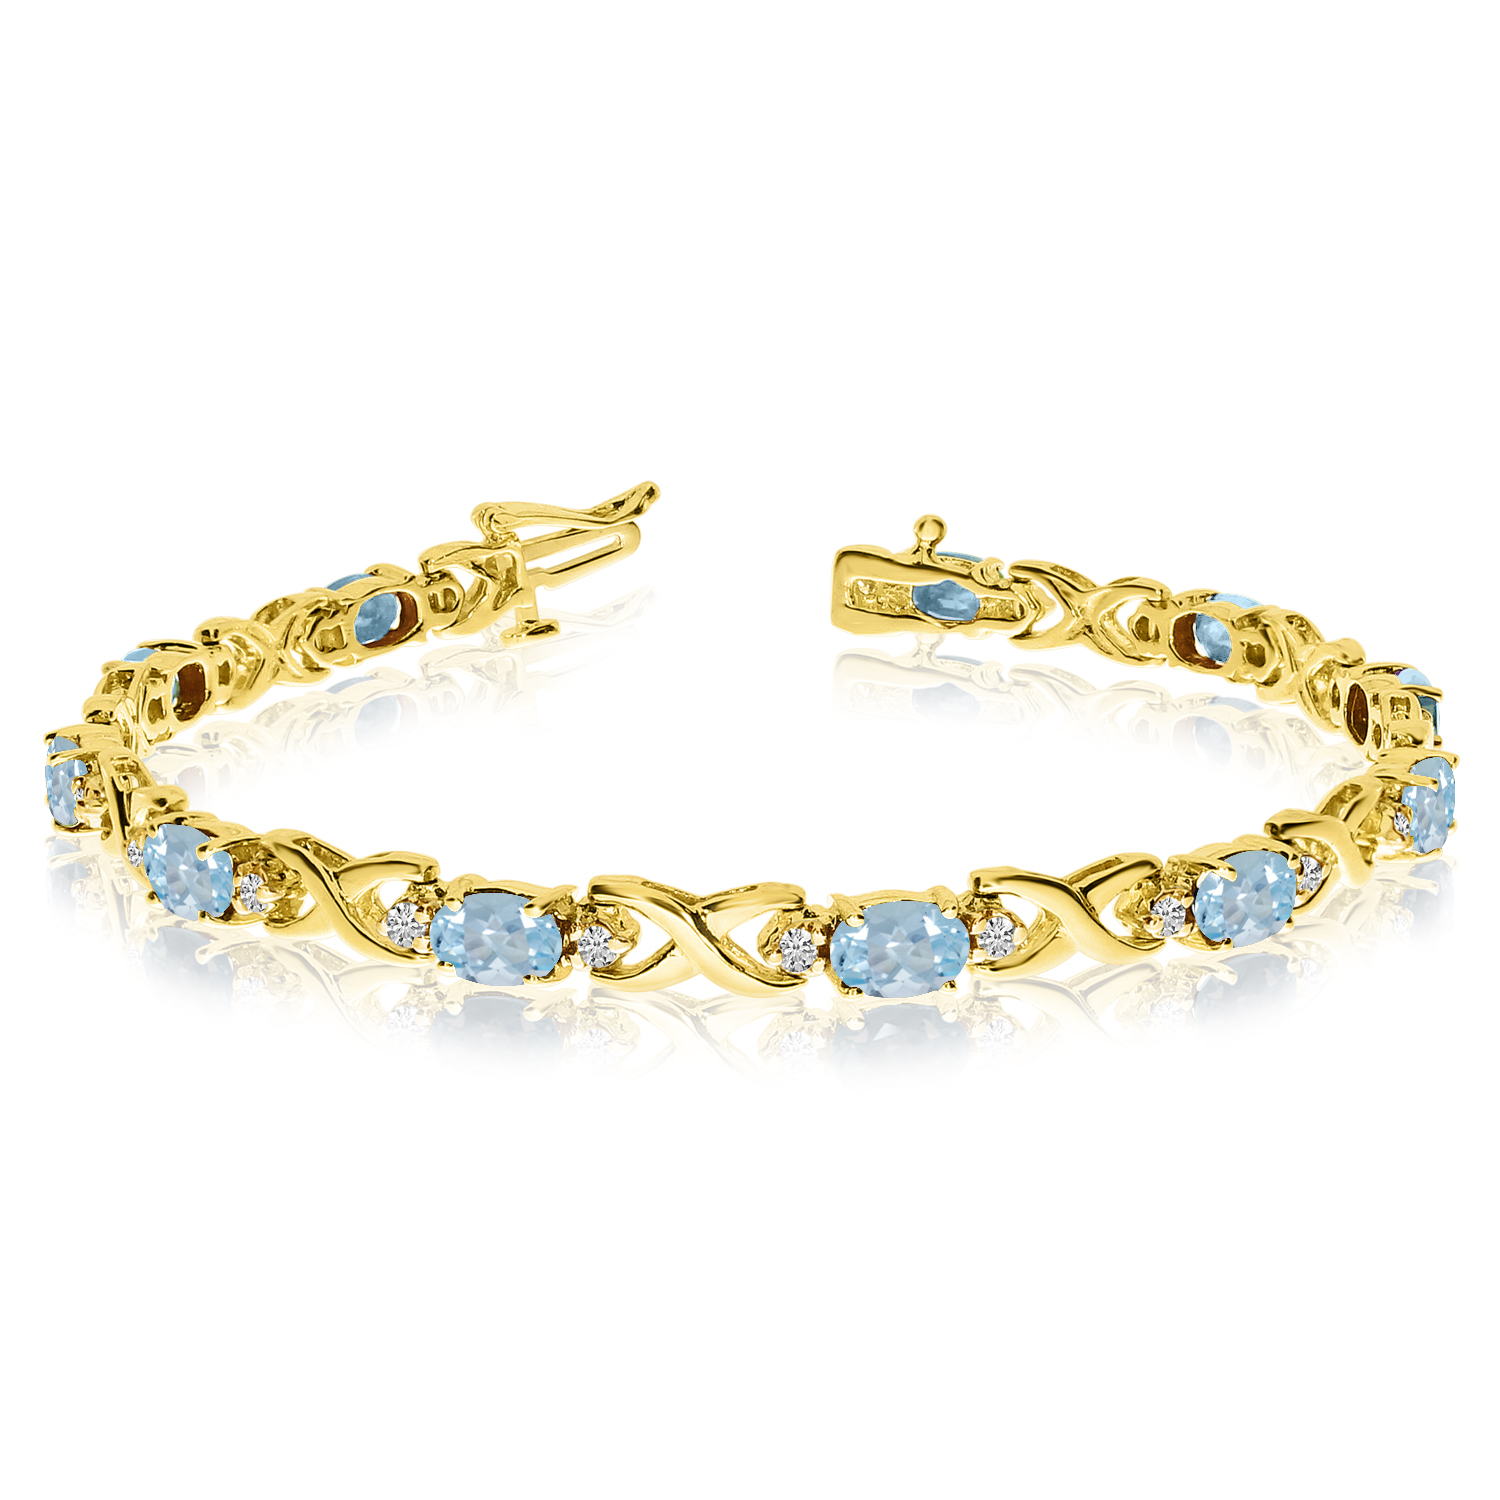 14k Yellow Gold Natural Aquamarine And Diamond Tennis Bracelet by LCD